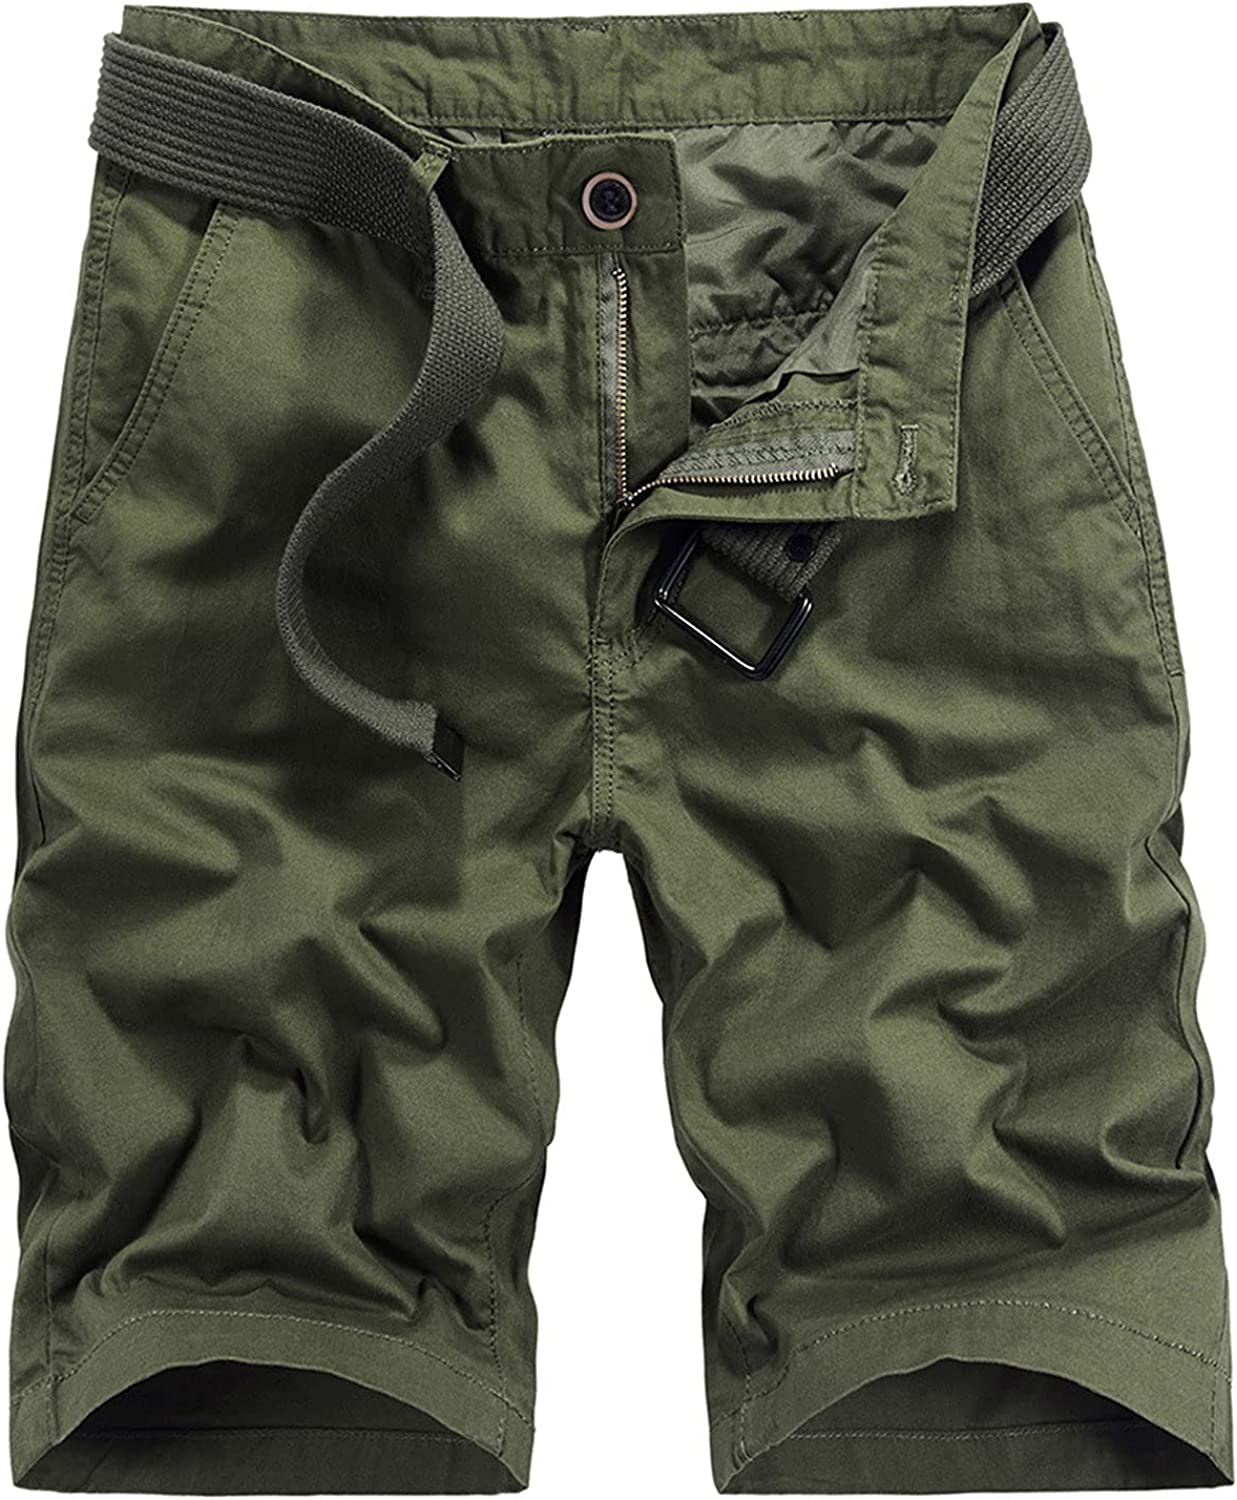 Mens Cotton Casual Outdoor Cargo Short Durable Baggy Work Short-Pant Running Training Straight Fit Shorts with Pockets